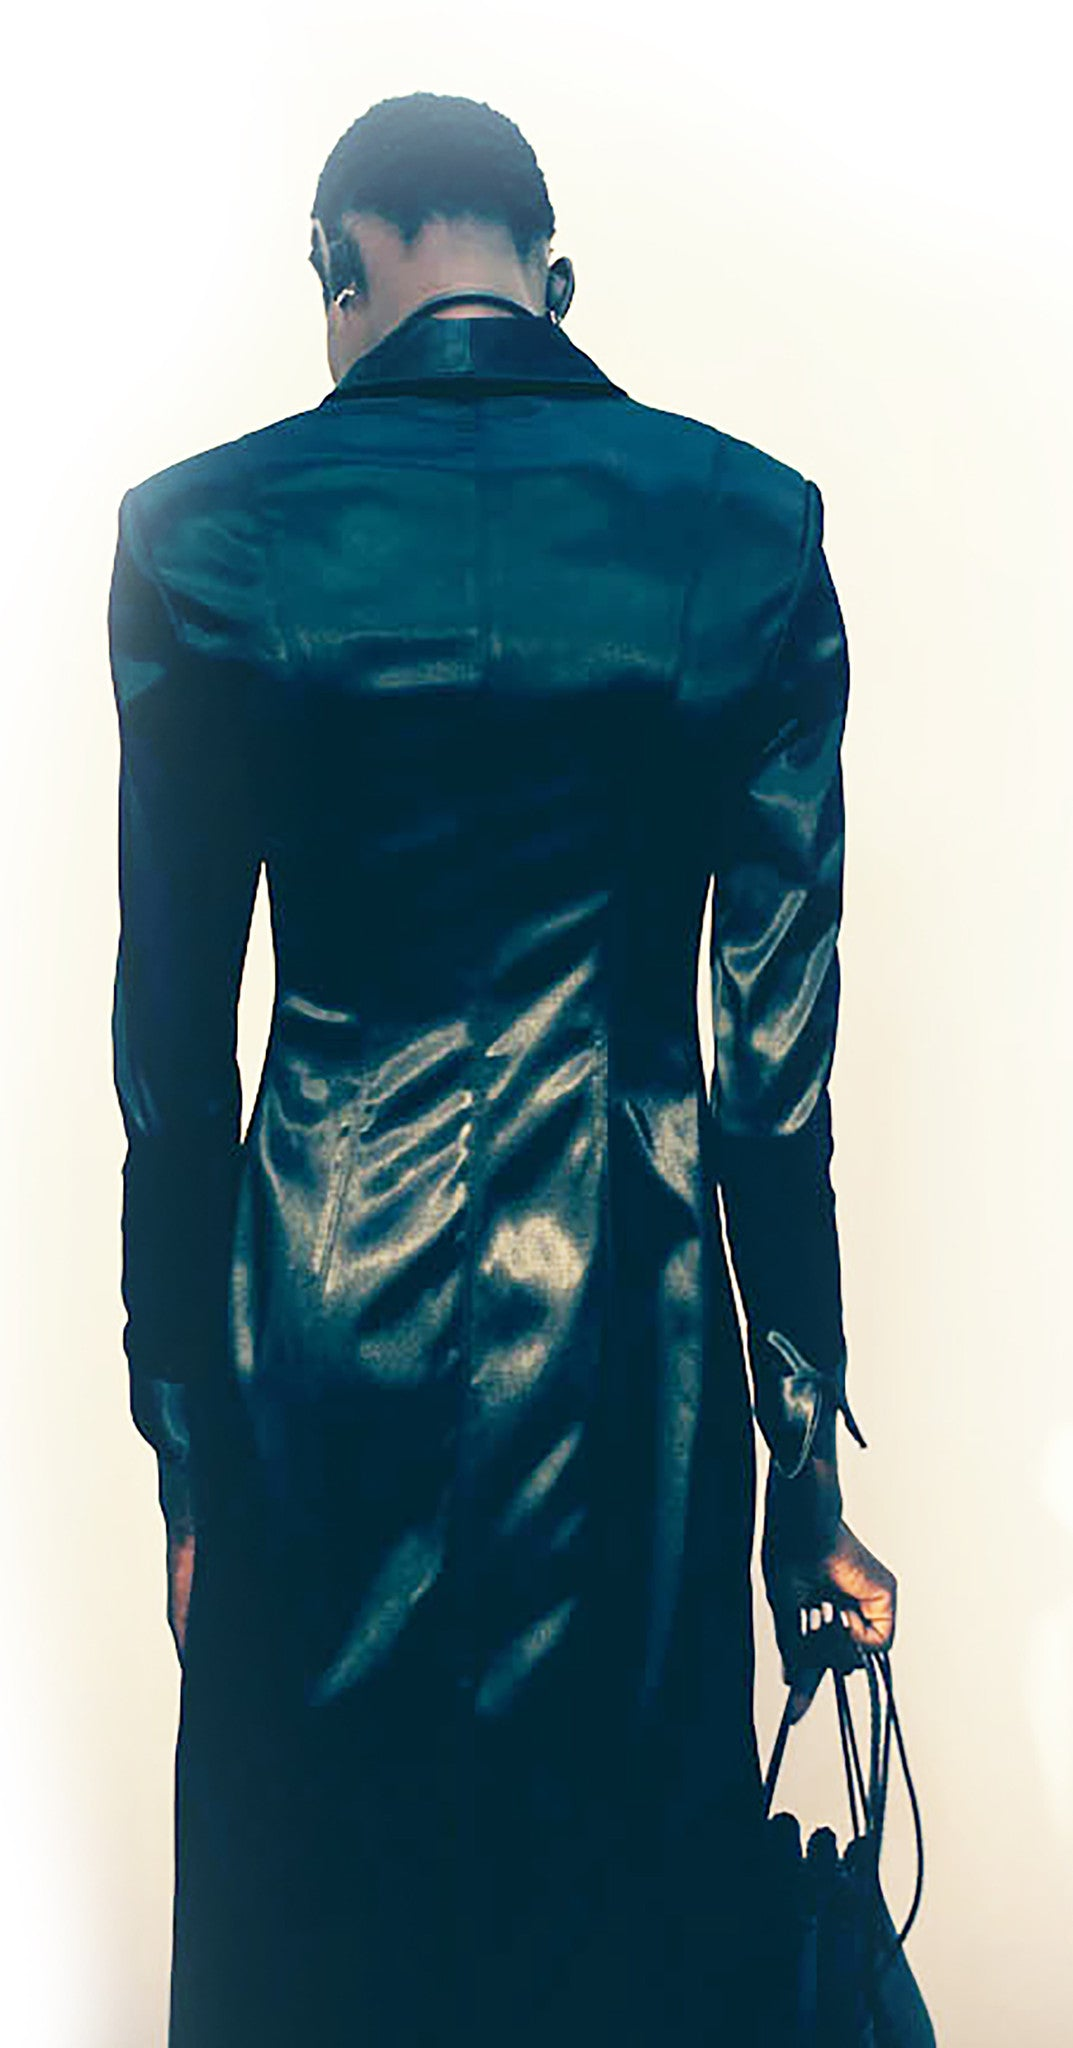 Ajak Deng IMG Mode Silk Satin Long Tuxedo Jacket & Black Sheer french Lace Half Slip Skirt Wendy Nichol Clothing Fashion designer Handmade in NYC custom tailoring Fashion ready to wear show SS15